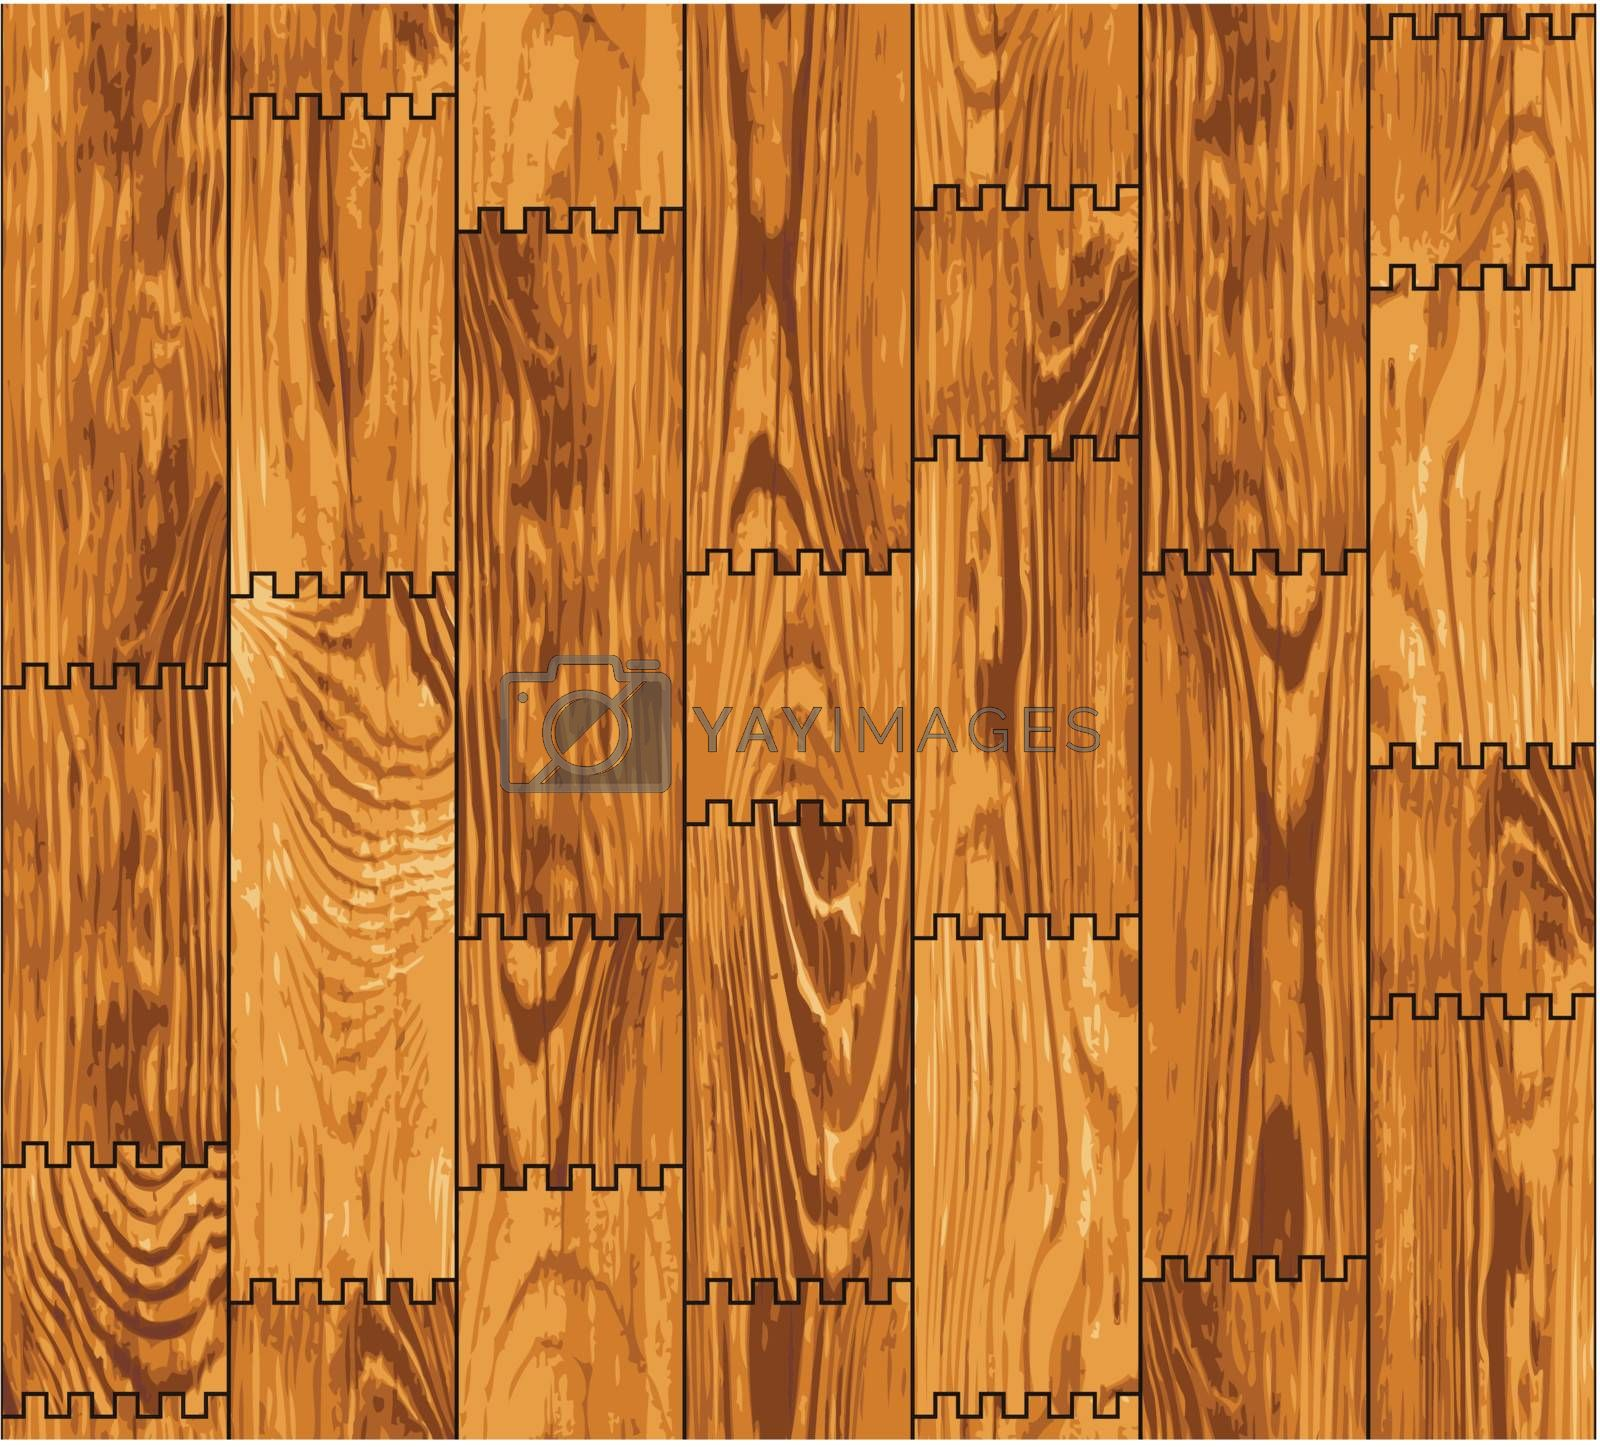 Seamless texture - a wall lined with decorative wooden boards